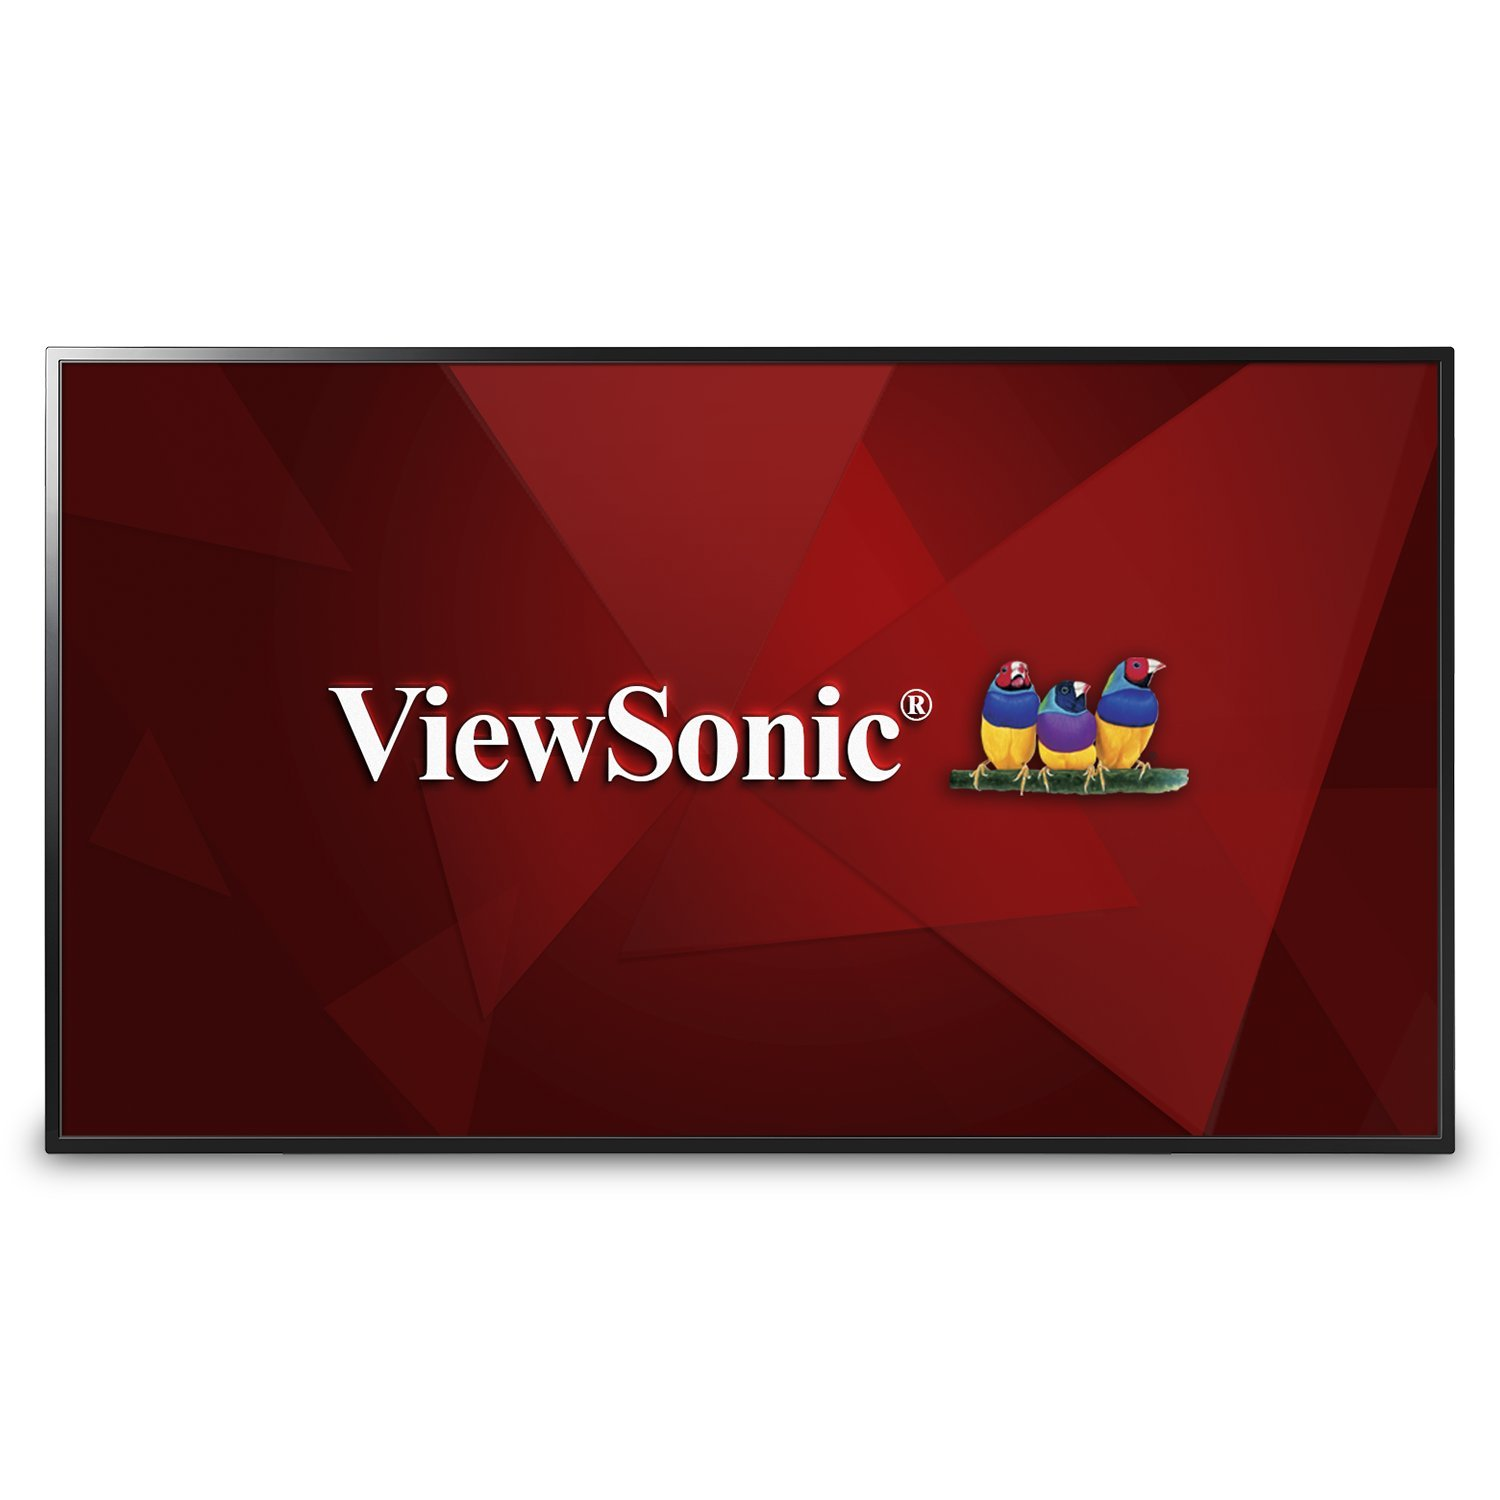 ViewSonic CDE4803 48'' 1080p Commercial LED Display with USB Media Player, HDMI